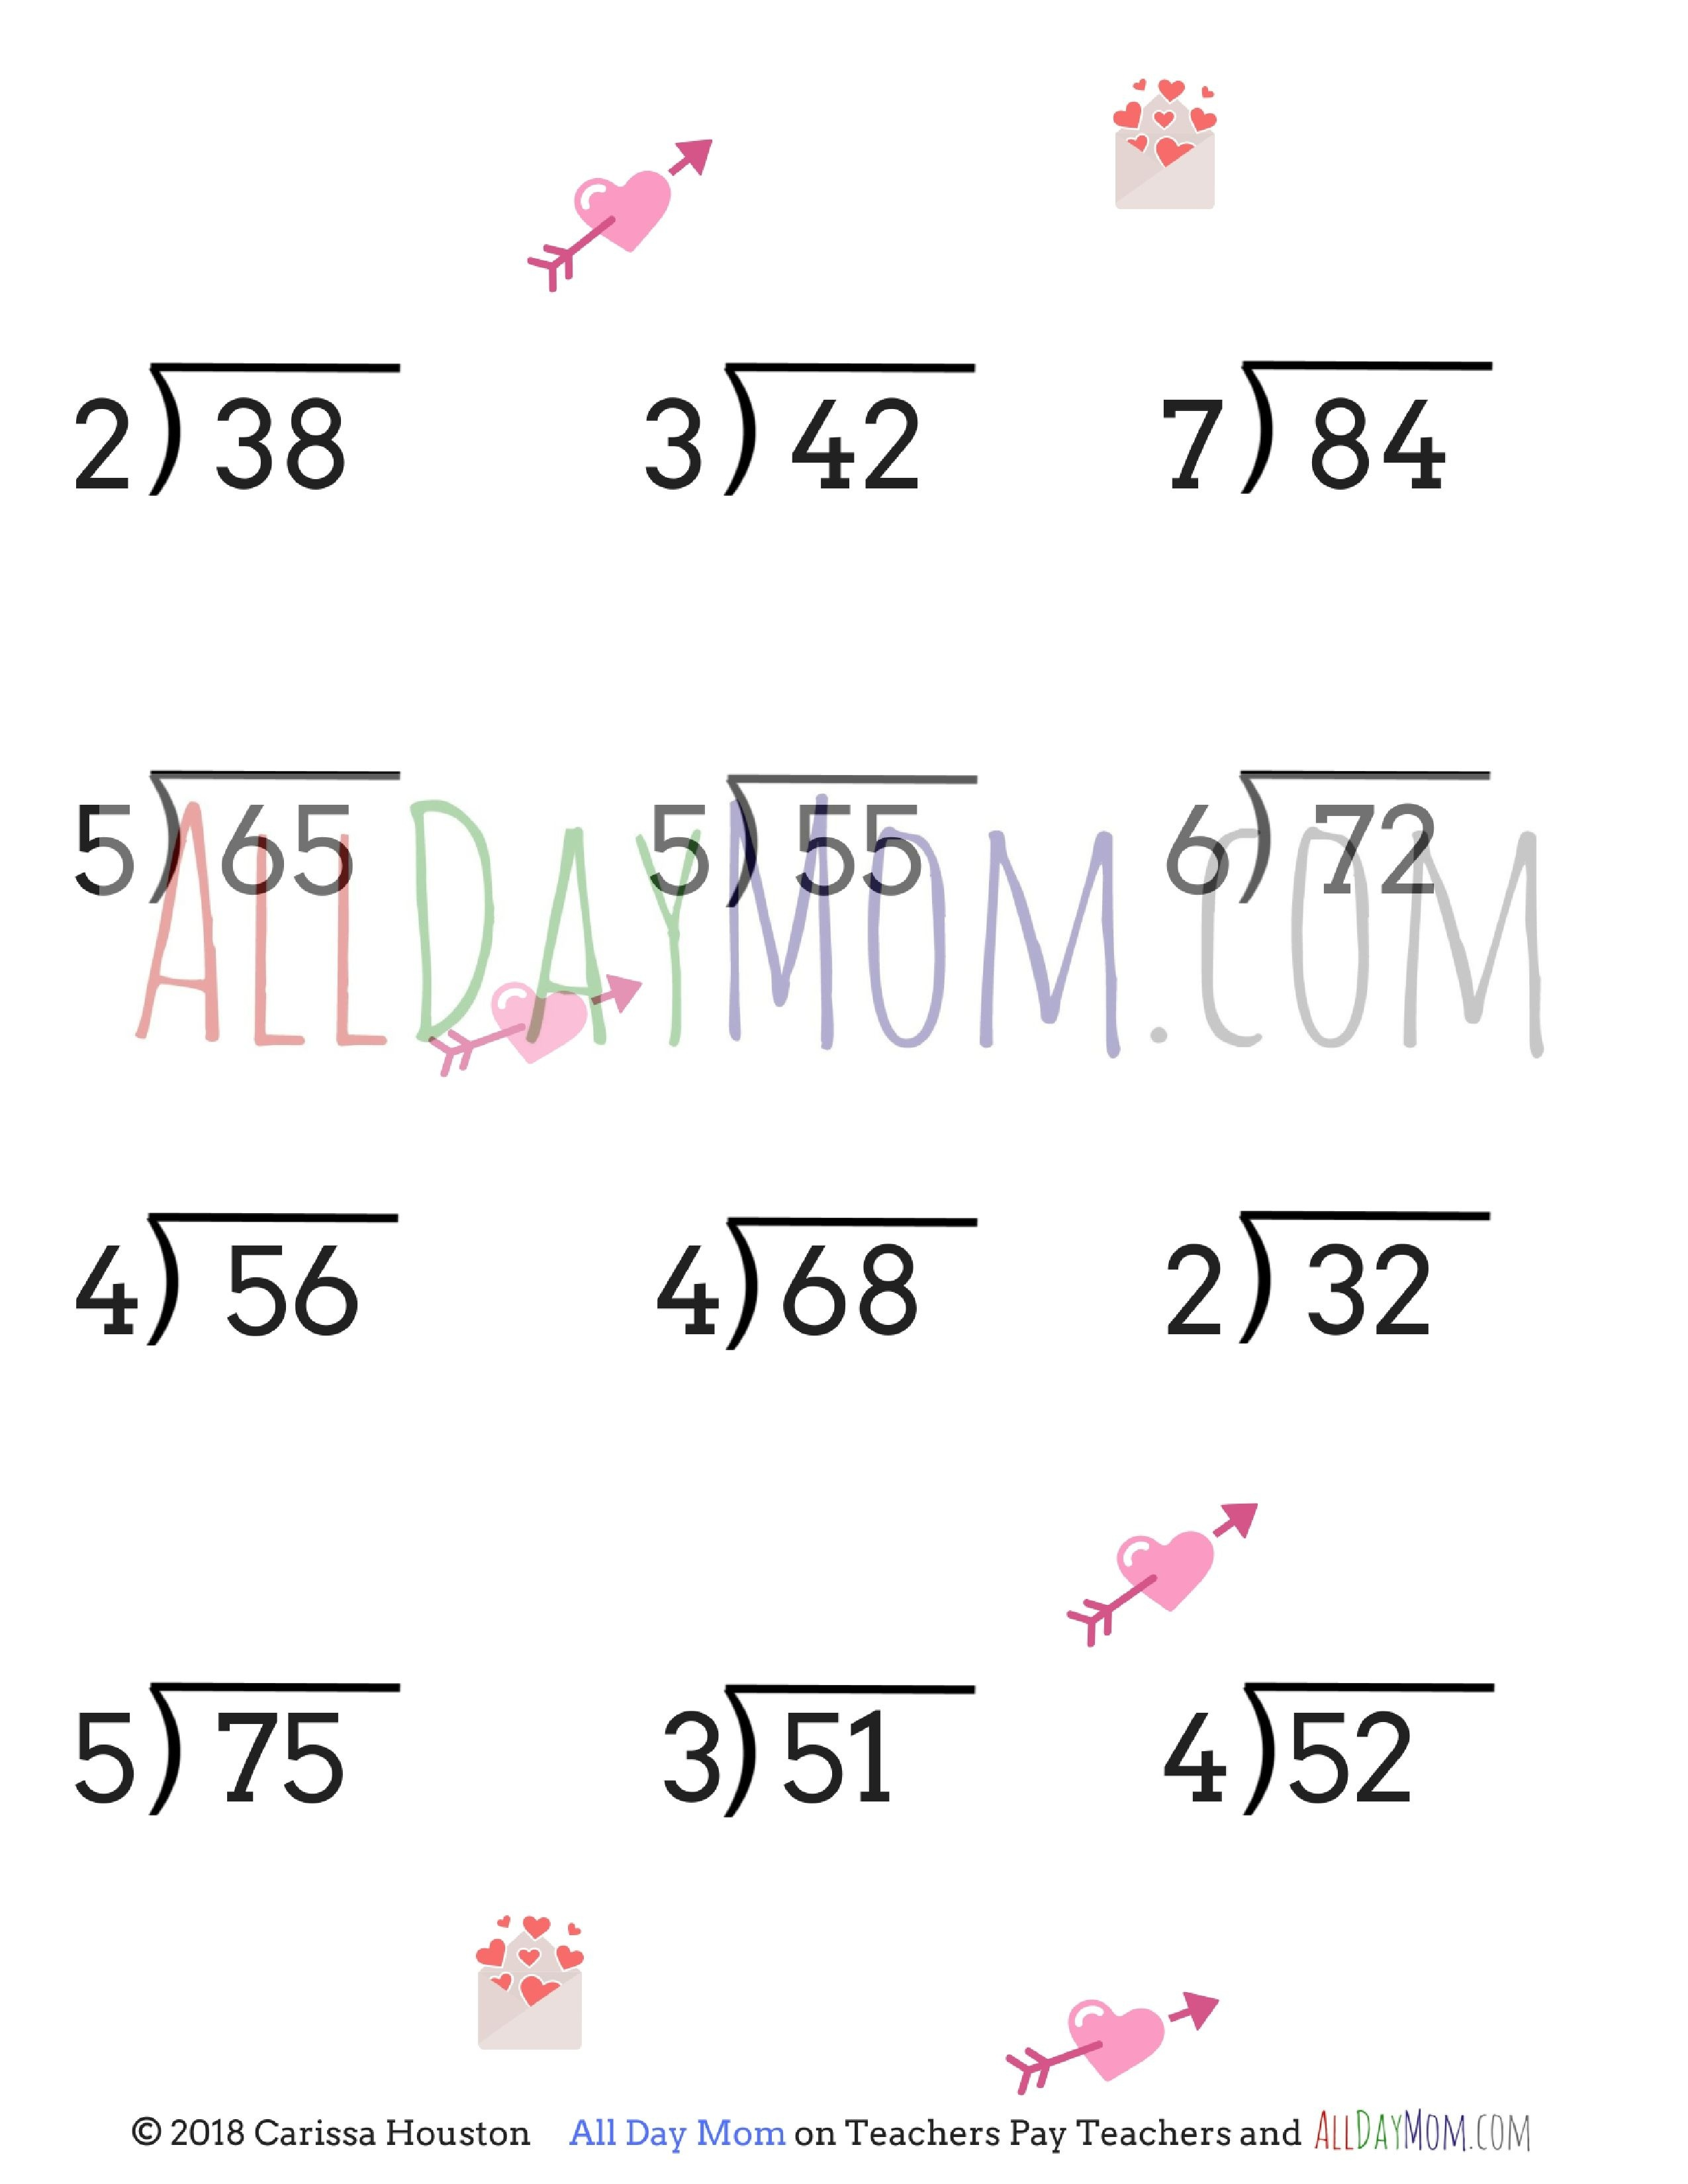 Free Printable Valentine's Day Math Worksheets! | Homeschool Math - Free Printable Valentine Math Worksheets